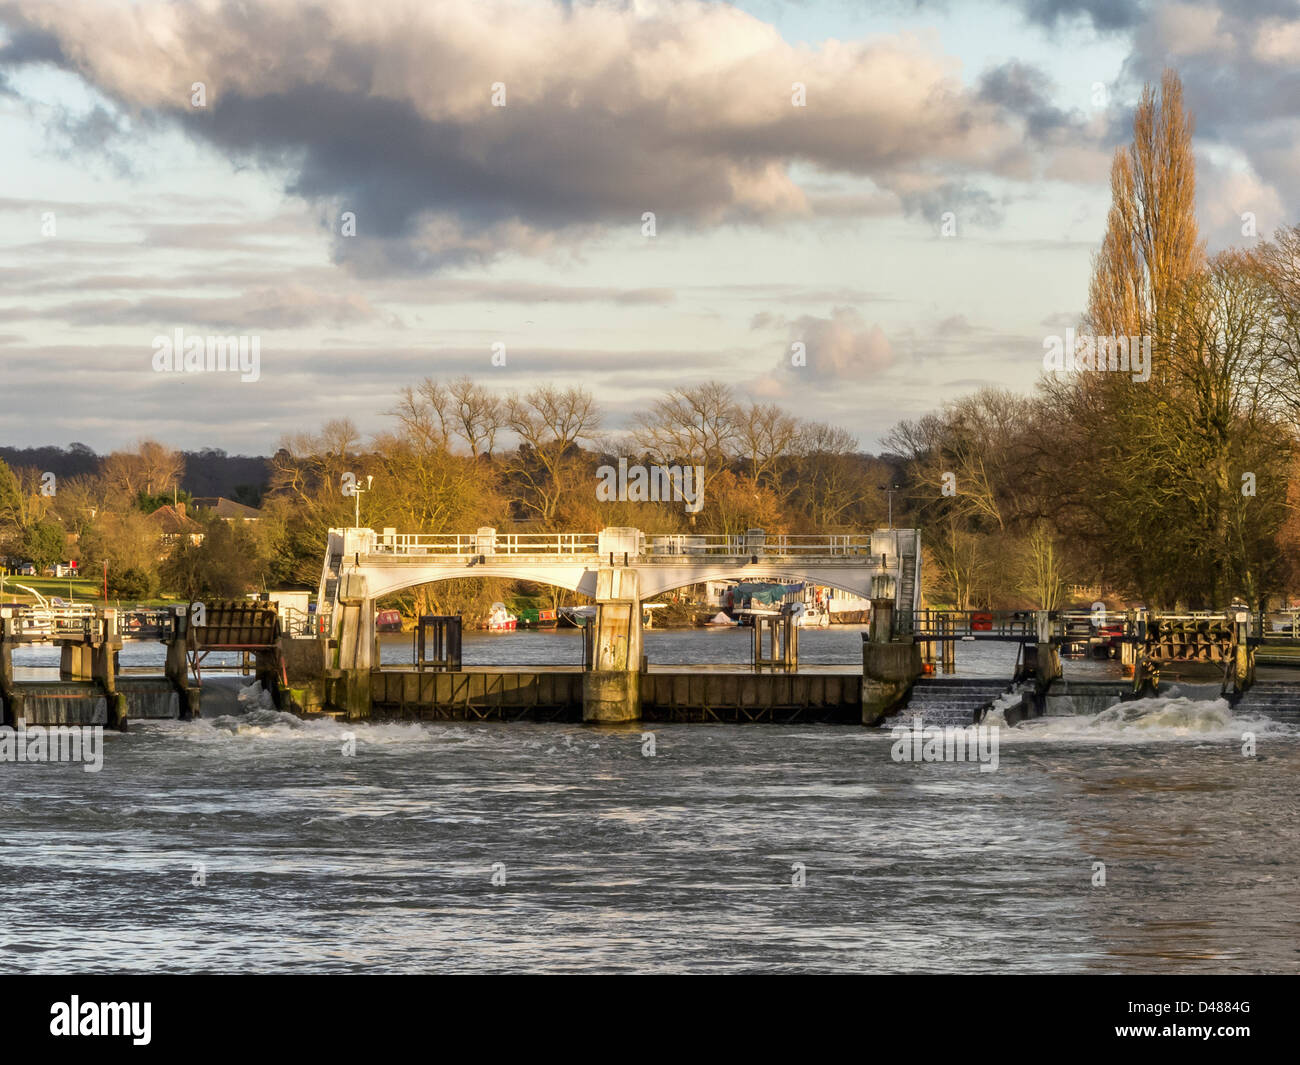 The weir in the Thames river at Teddington Lock Stock Photo